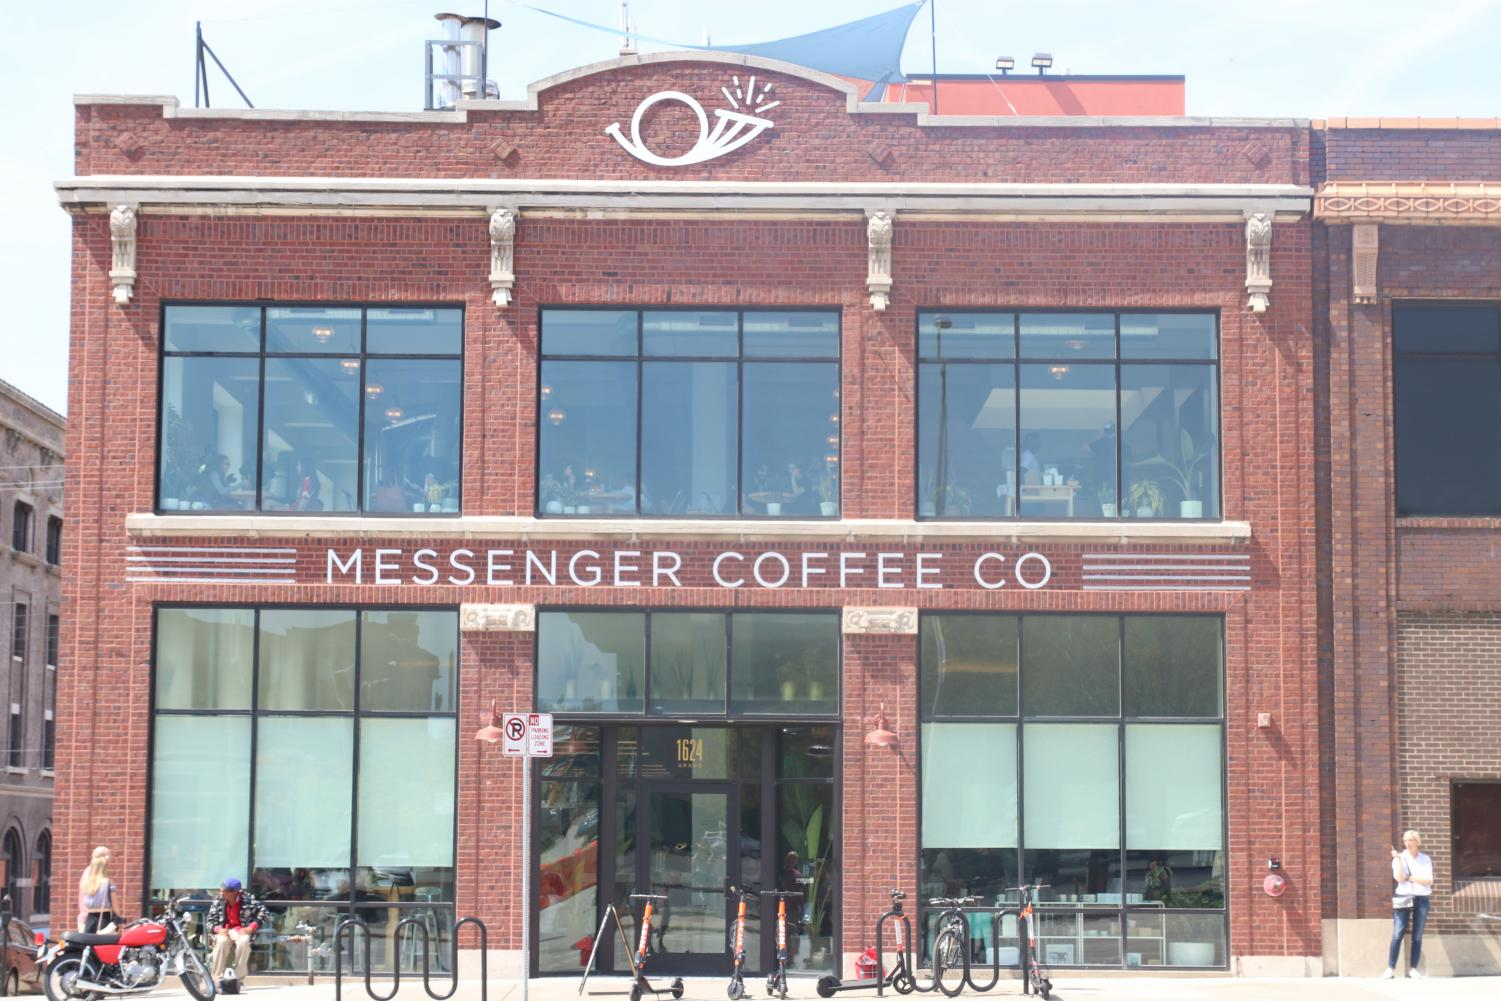 Messenger Coffee Company is popular place to hangout. It is located at 1624 Grand Blvd, Kansas City, MO 64108